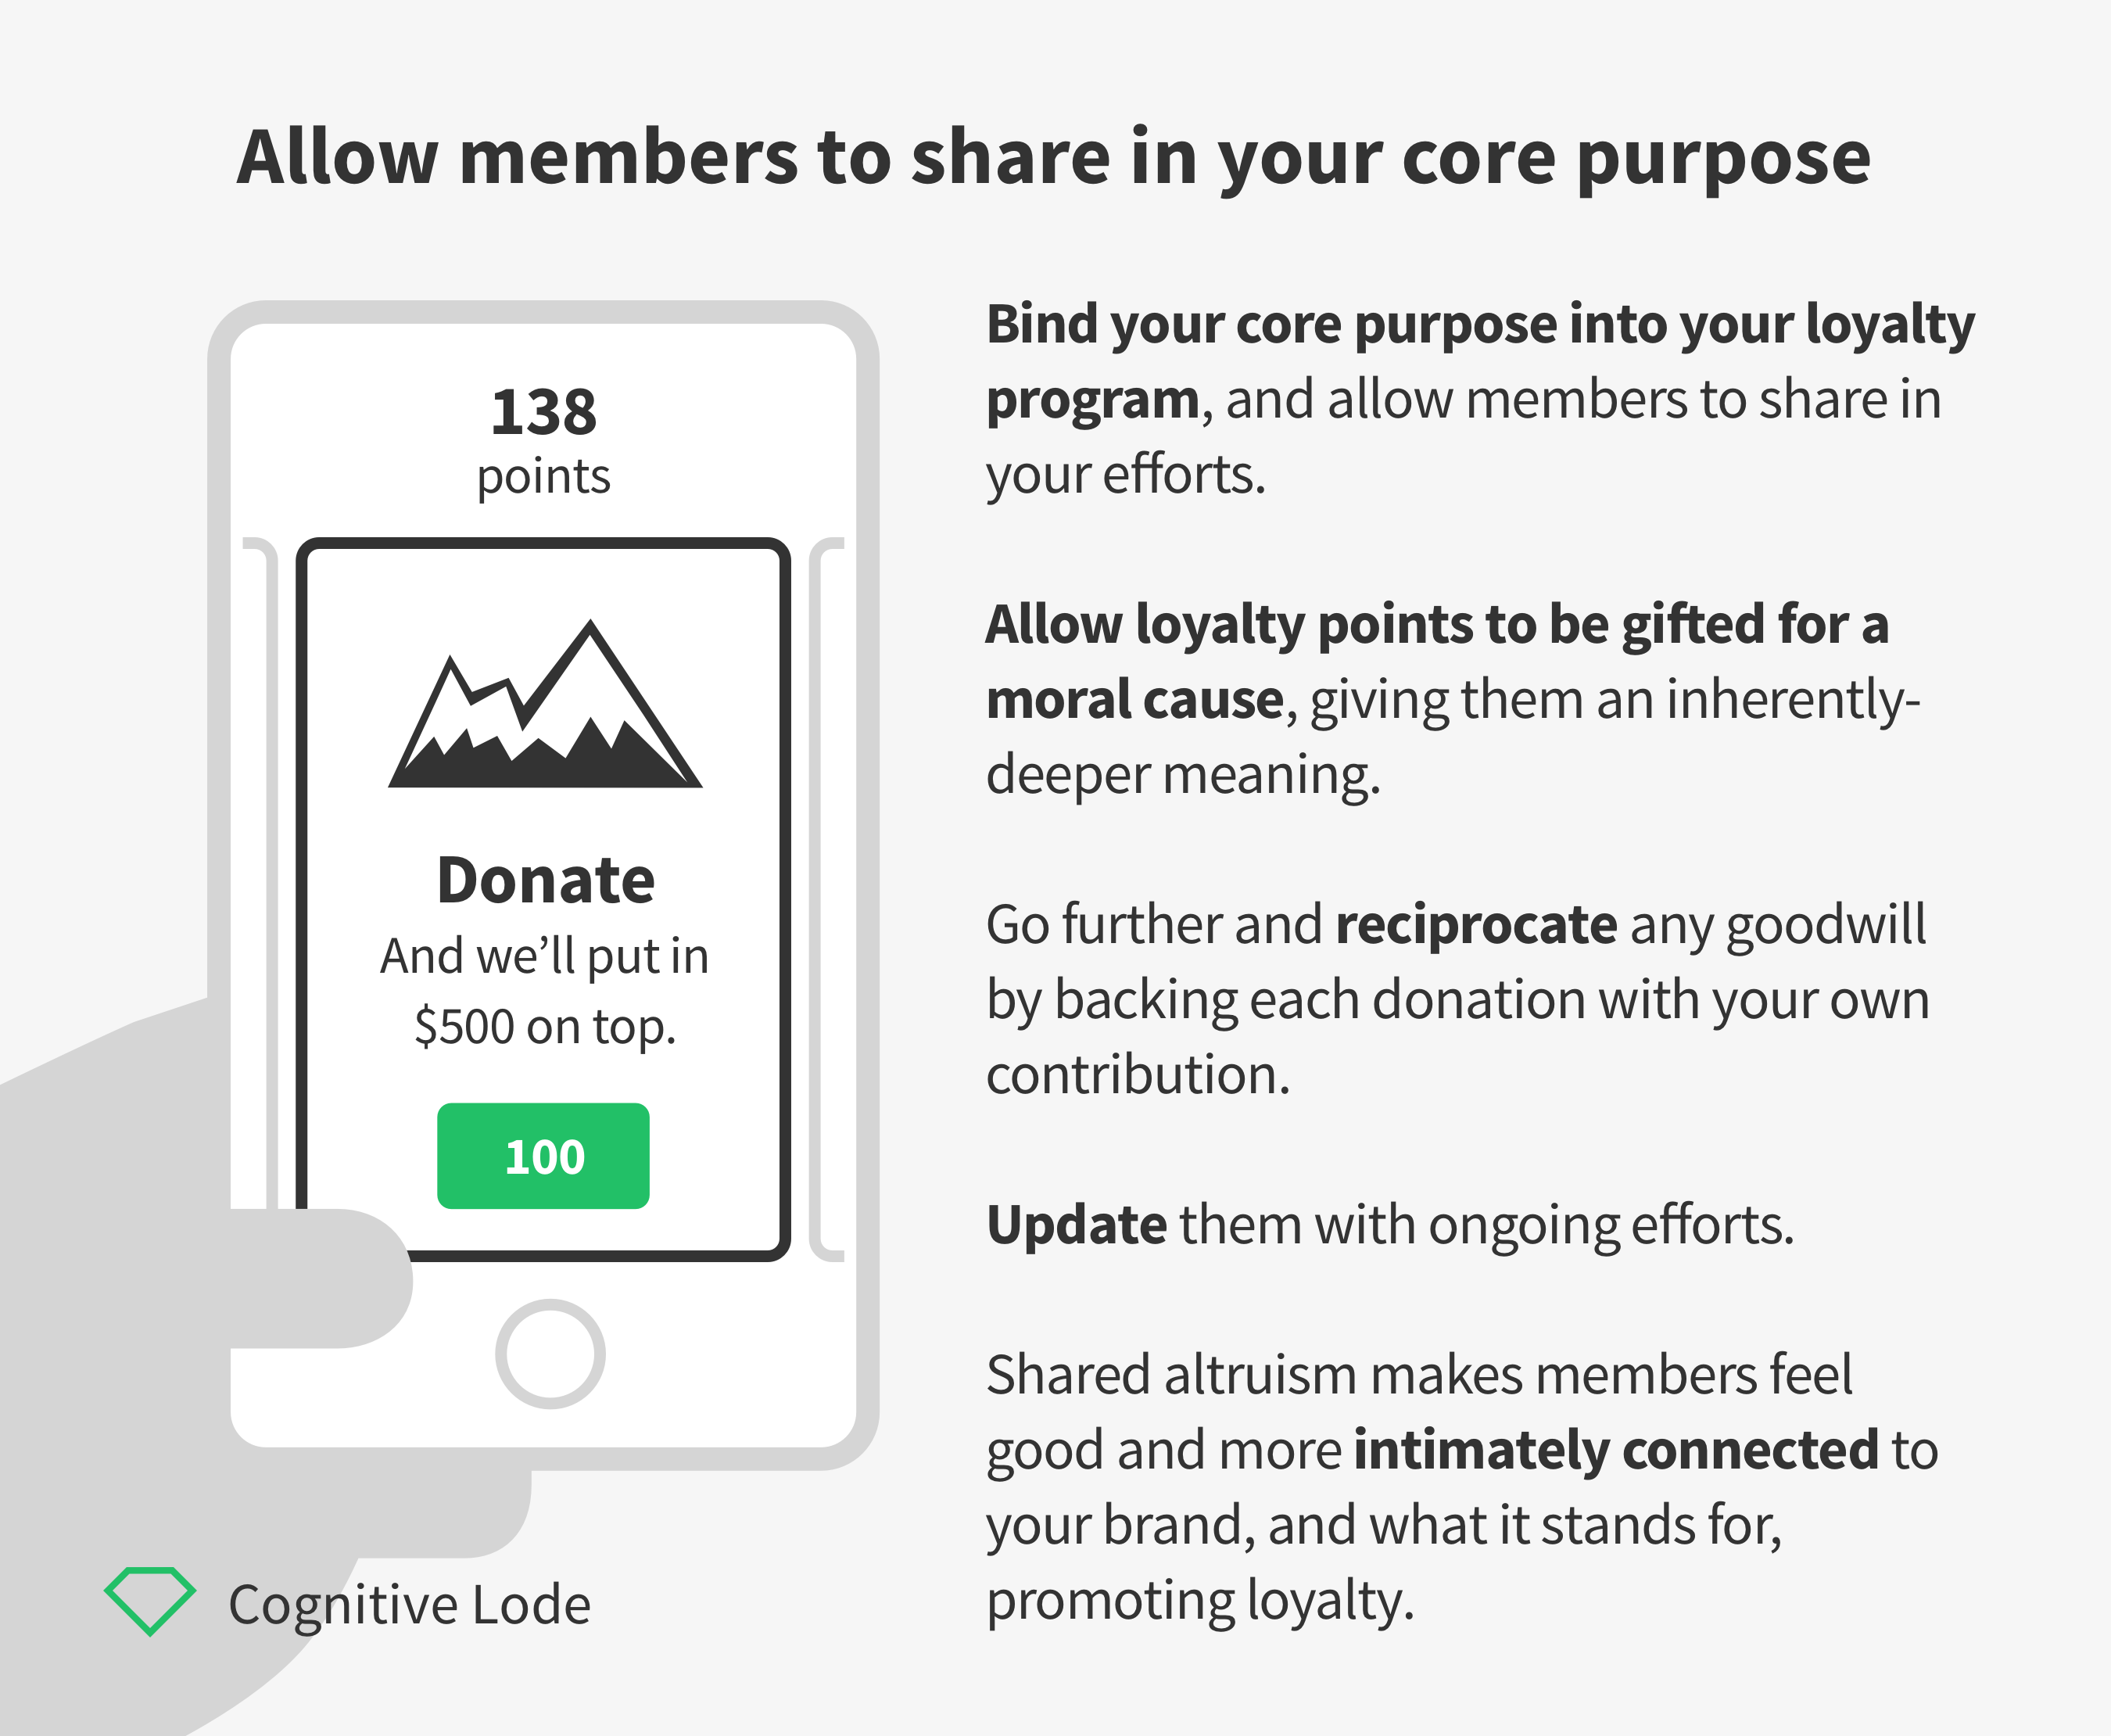 Cookie Clicker - Allow members to share in your share purpose